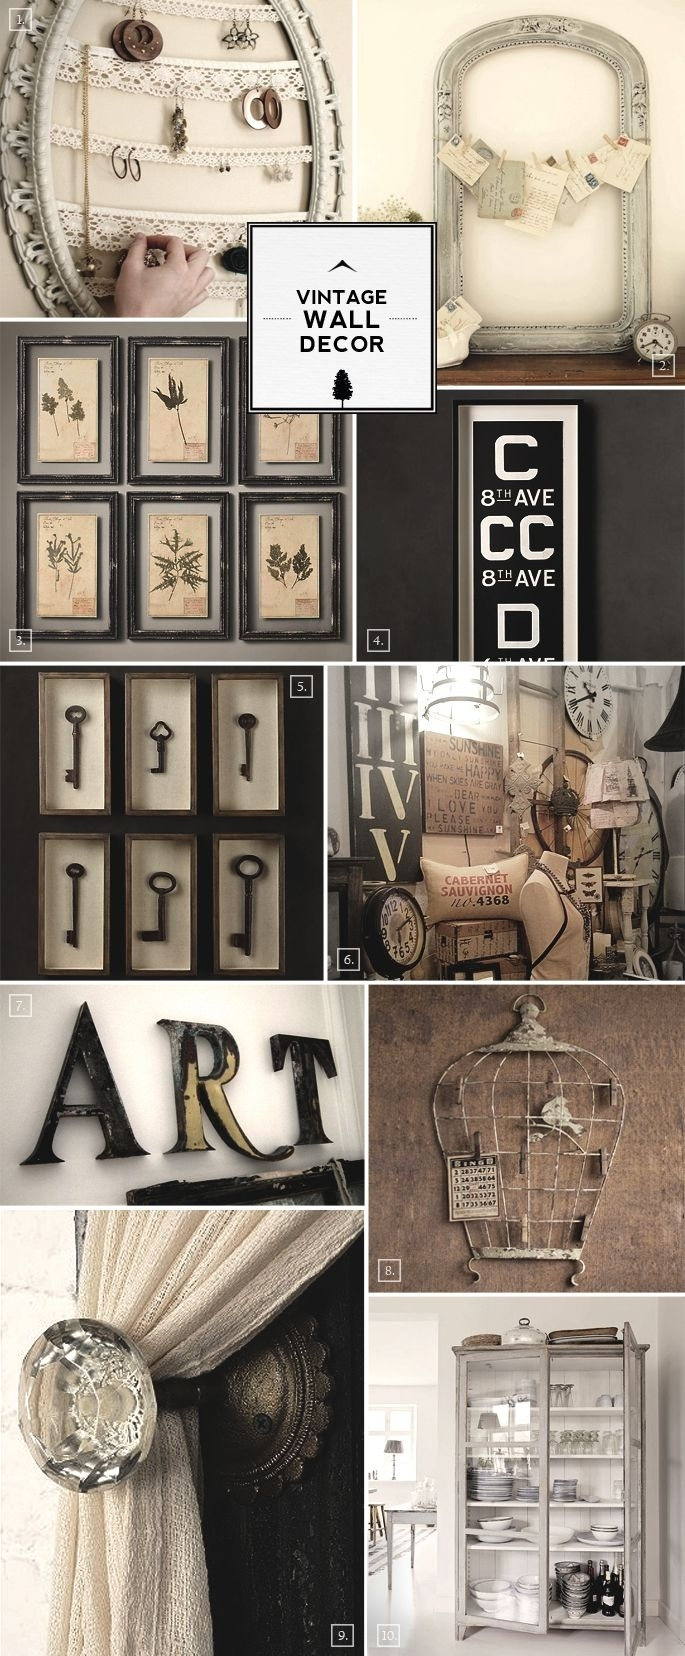 Best 25 Vintage Walls Ideas On Pinterest For Wall Decor Ideas With Latest Antique Wall Accents (View 3 of 15)